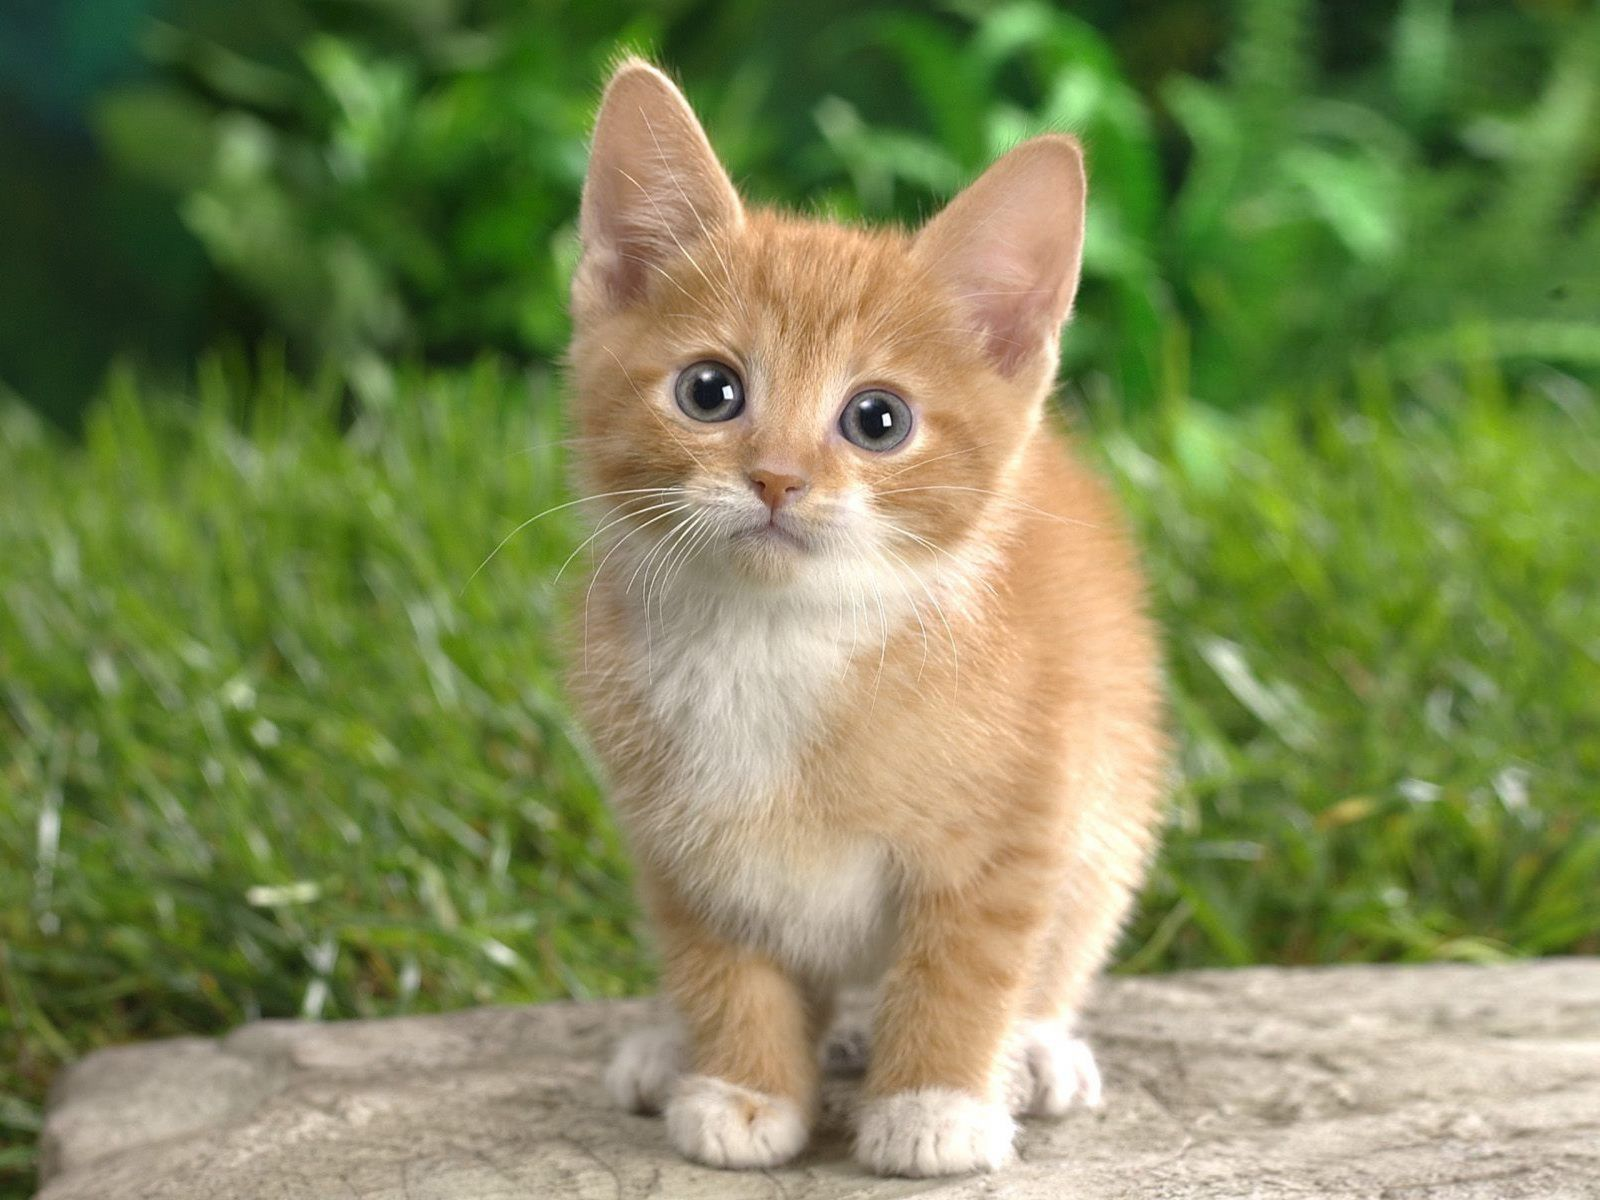 Innocent And Cute Cat Wallpaper Hd Animals And Birds Wallpapers Kittens Cutest Cute Cat Wallpaper Pets Cats